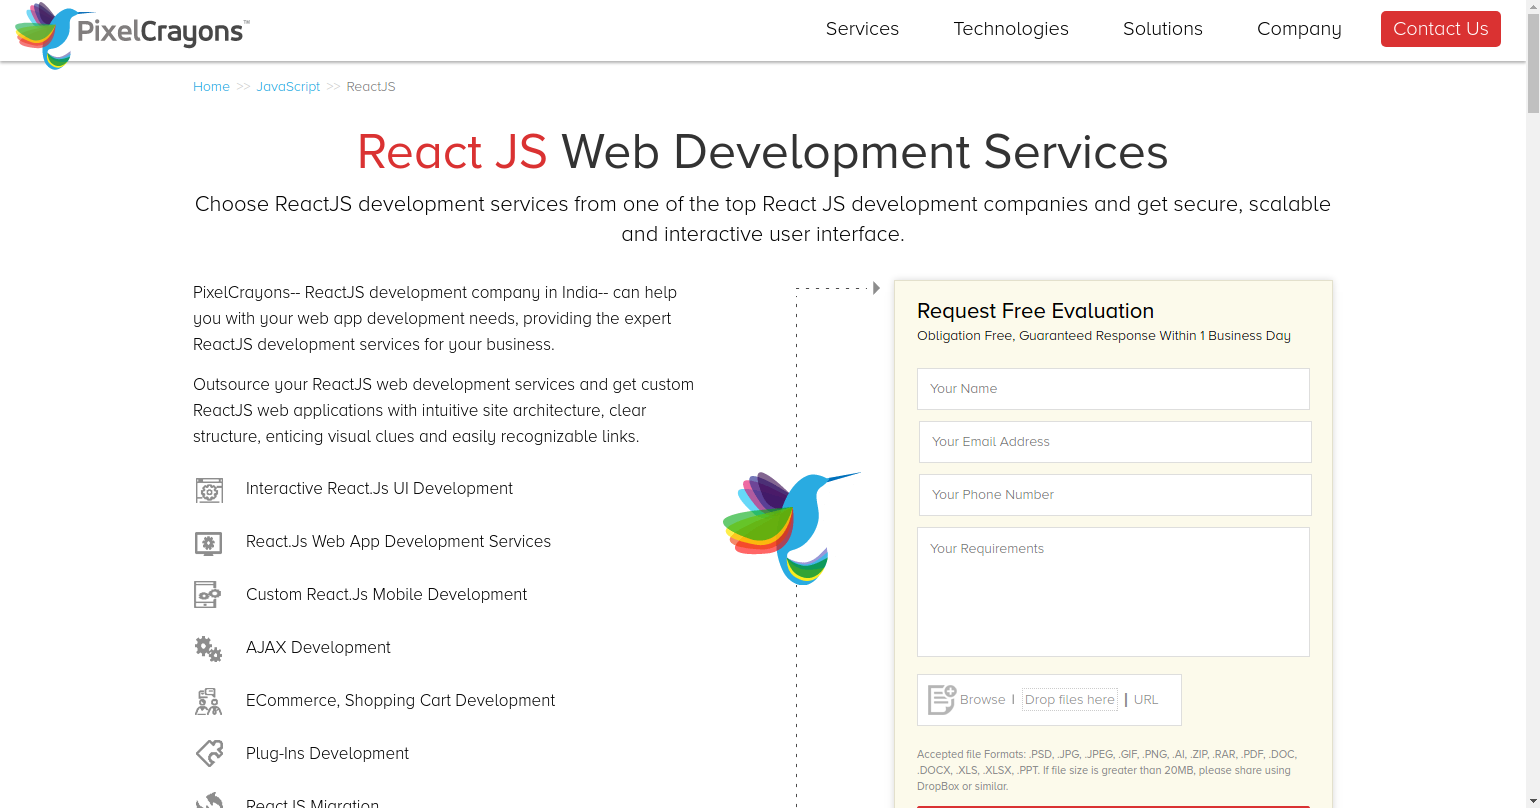 outsource reactjs web development company, reactjs web application